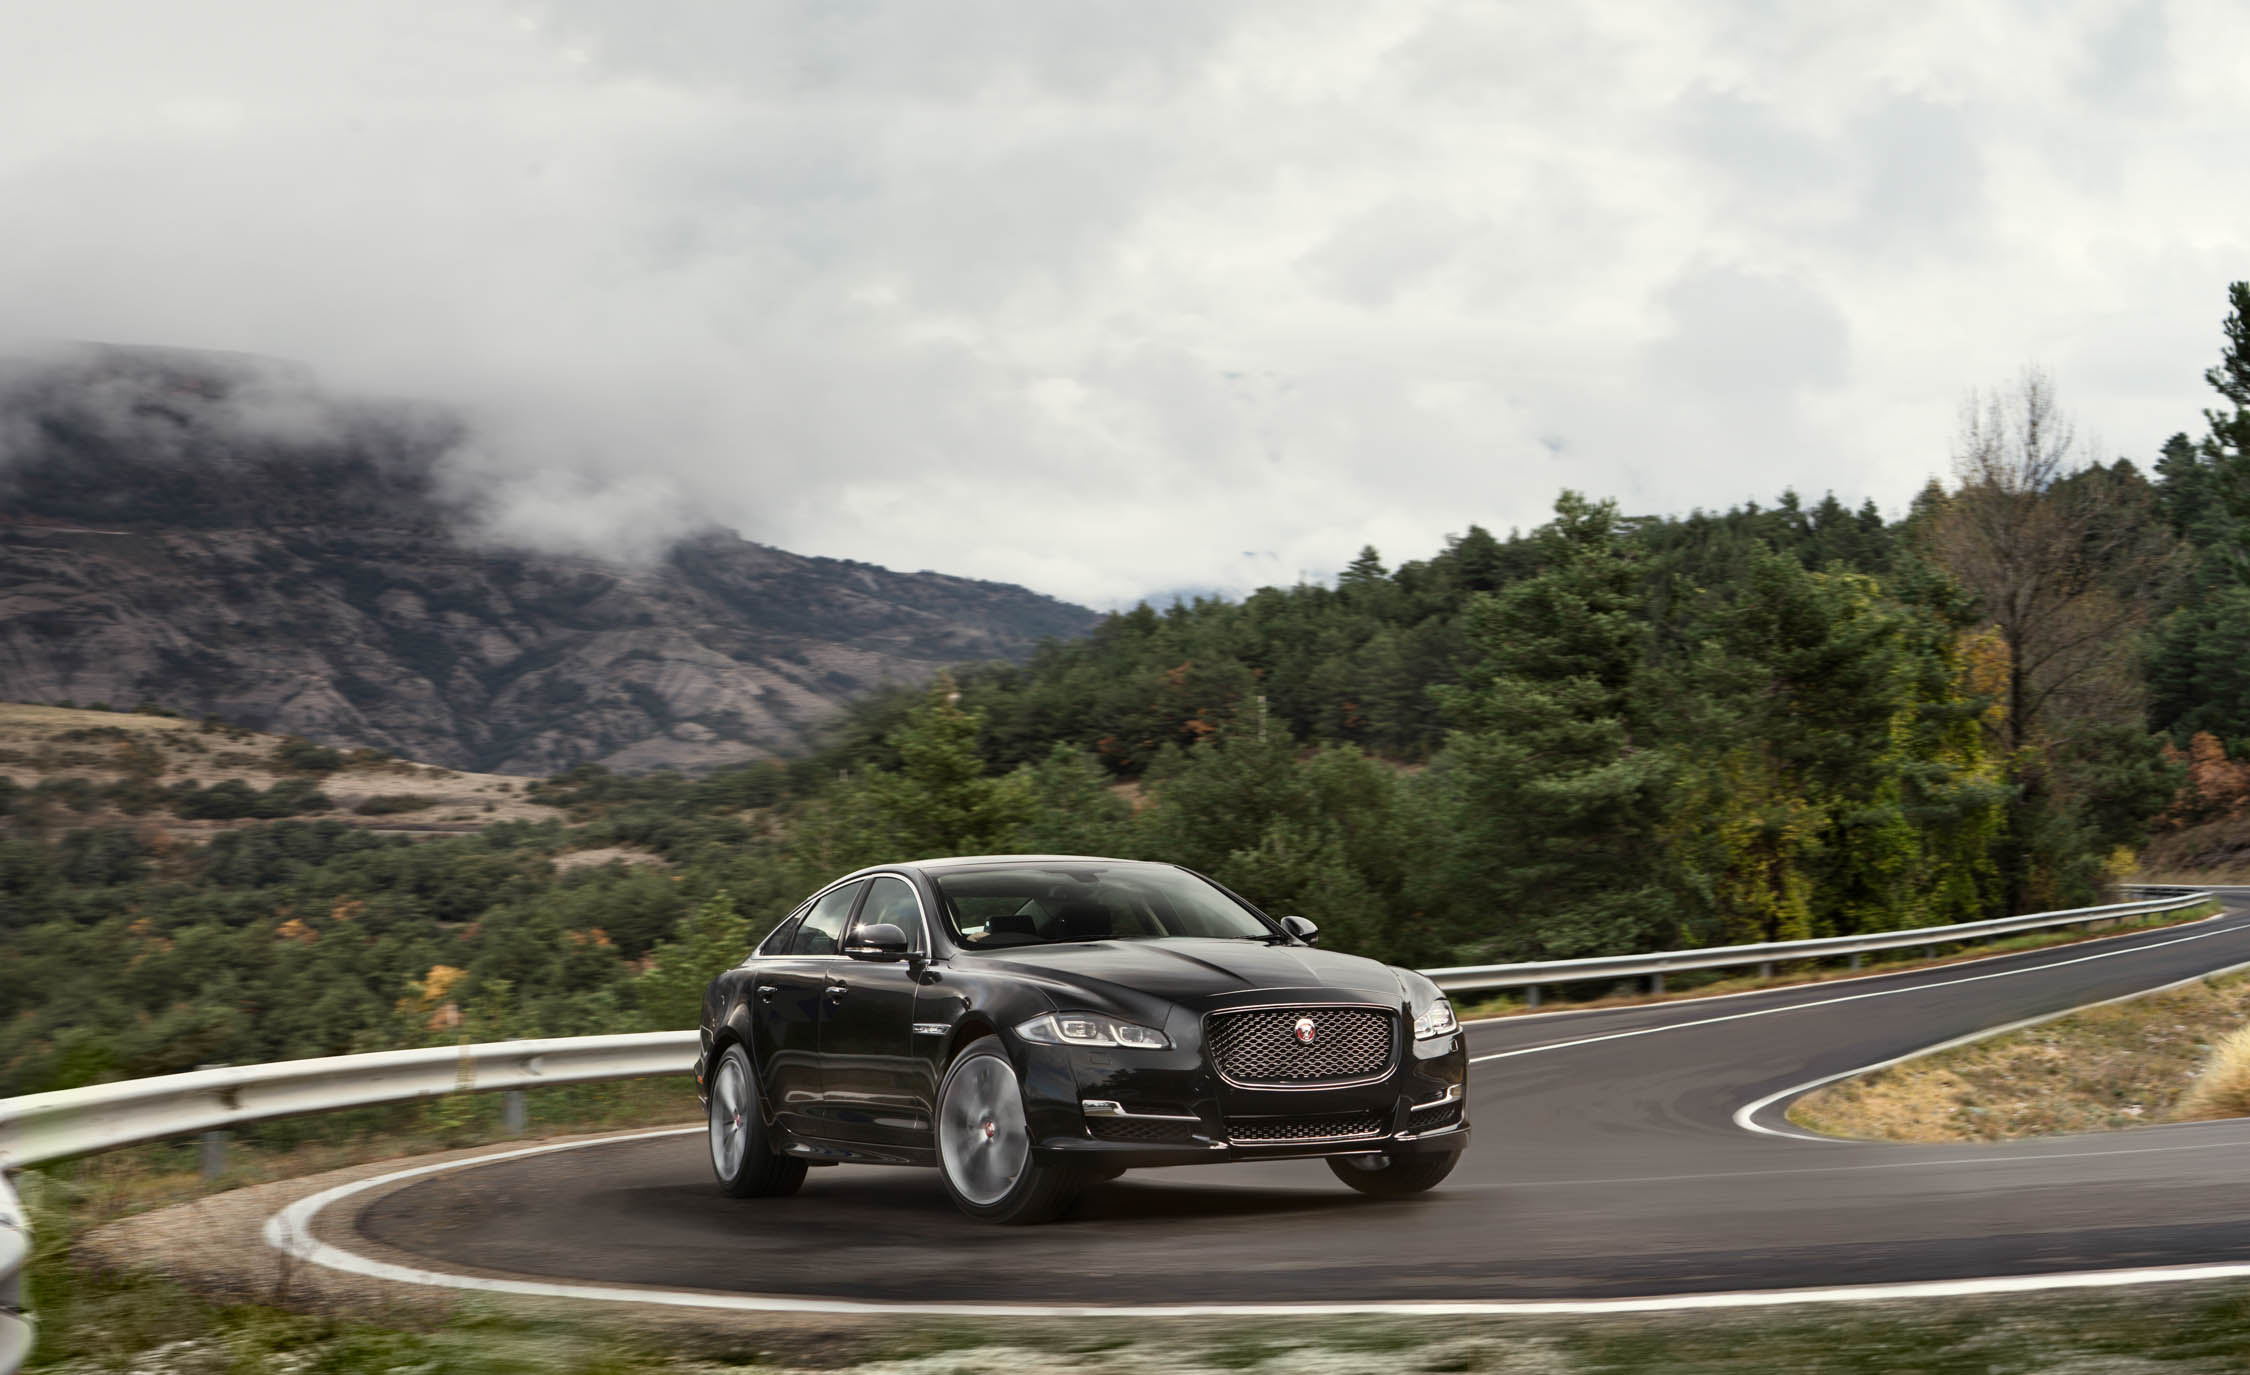 2016 Jaguar XJ (View 1 of 19)